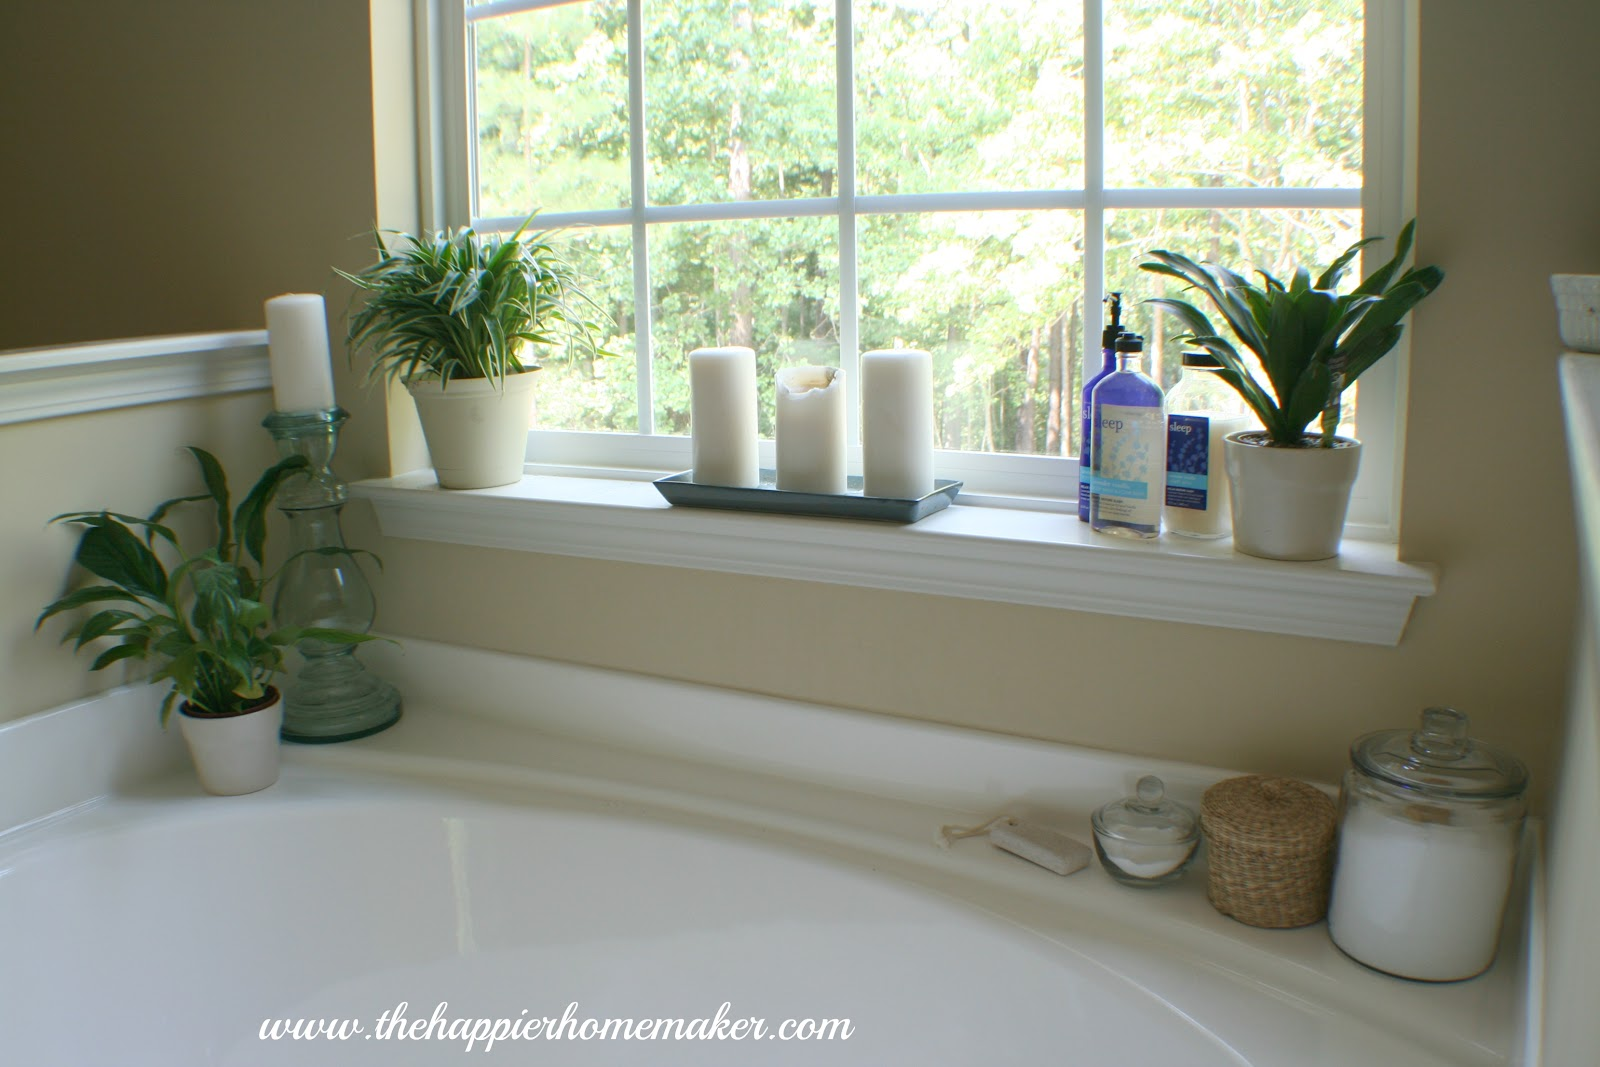 Garden Bathtub Decorating Ideas more tips for decorating the bathrooms in your home room decorating Decorating Around A Bathtub